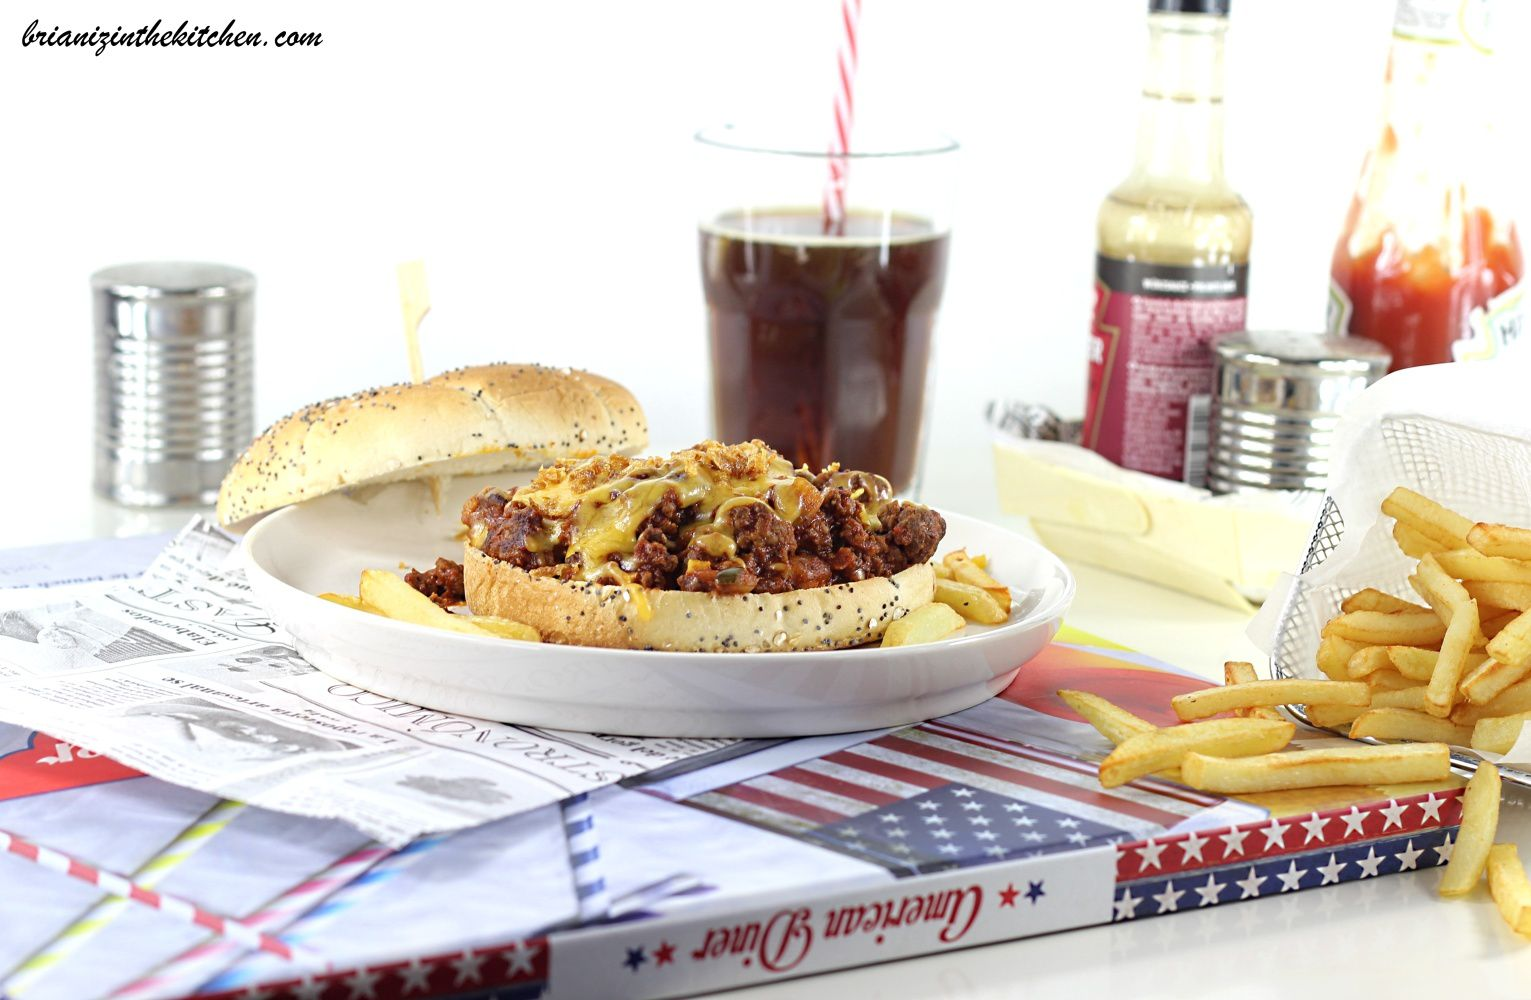 Sloppy Joe {Burger Bordélique à la Viande Hachée} - Etats Unis